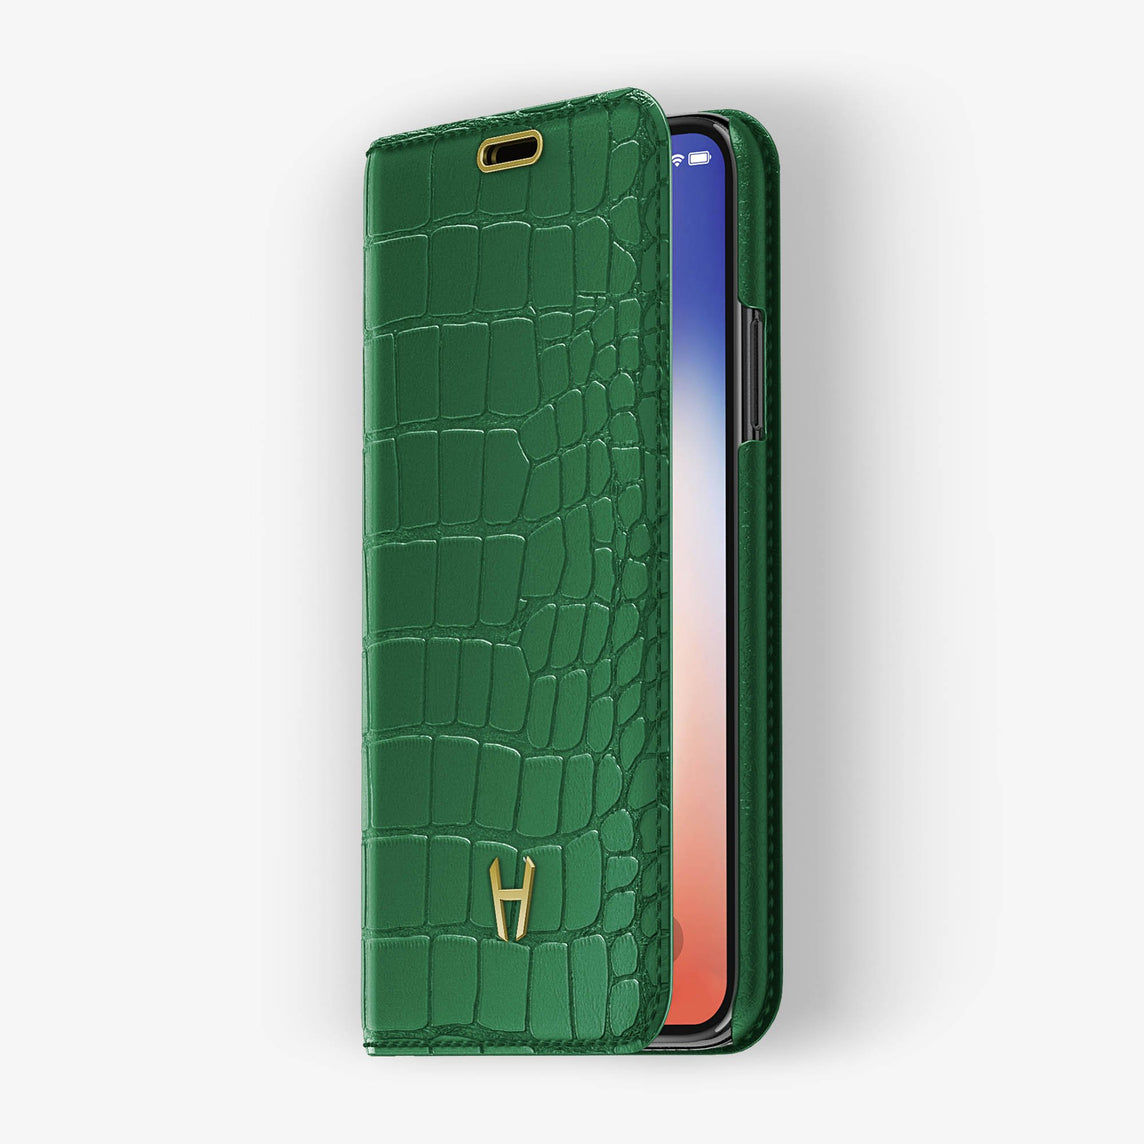 Alligator [iPhone Folio Case] [model:iphone-xr-case] [colour:green] [finishing:yellow-gold]